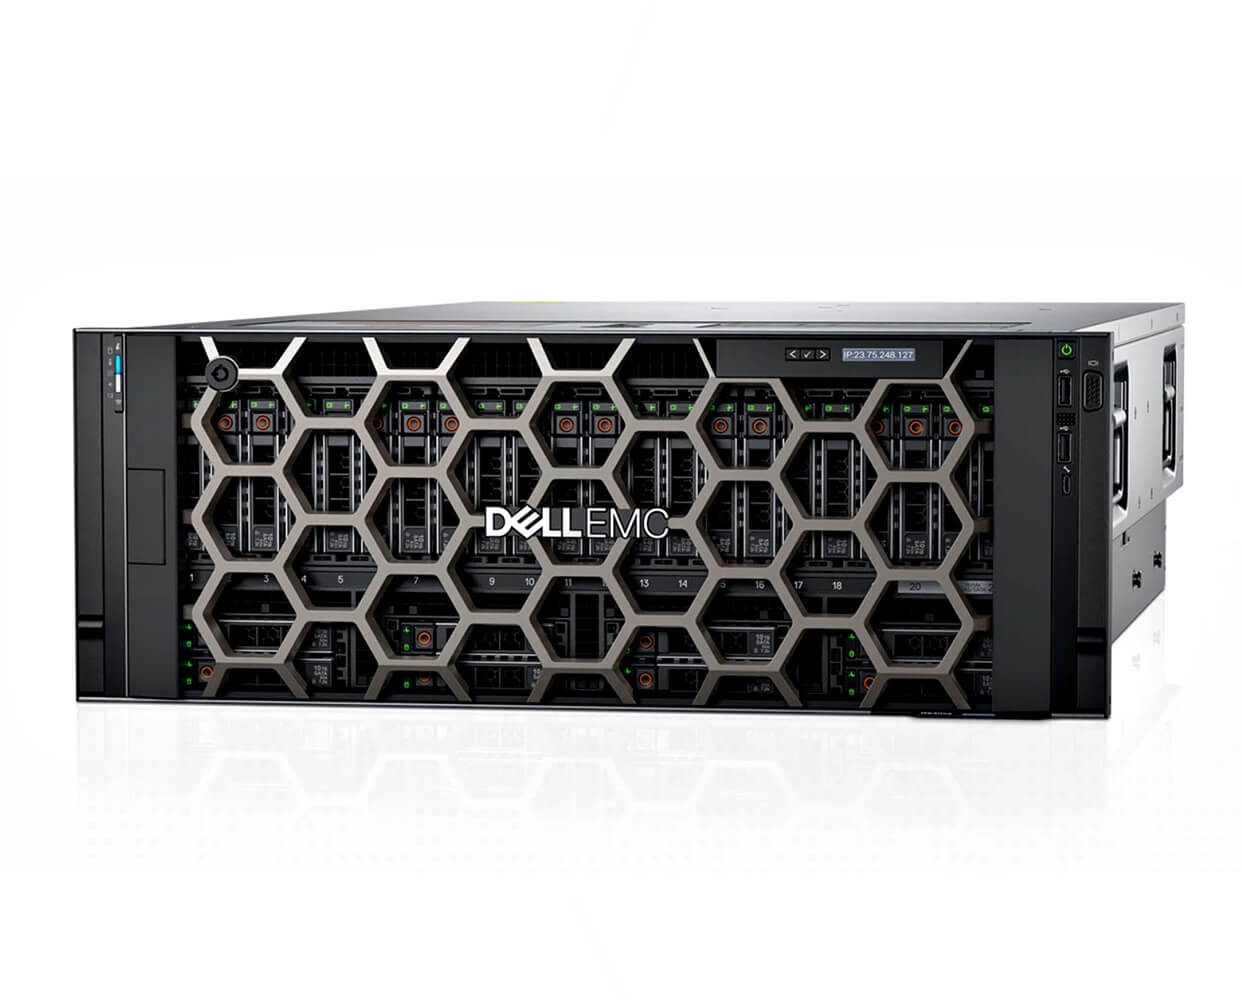 R940xa | Servidor Dell PowerEdge 4 Processadores Físicos Intel Xeon Gold 6230 de 20 Cores / 40 Threads 2.1 GHz / 27,5MB cache | Garantia Oficial Dell do Brasil best